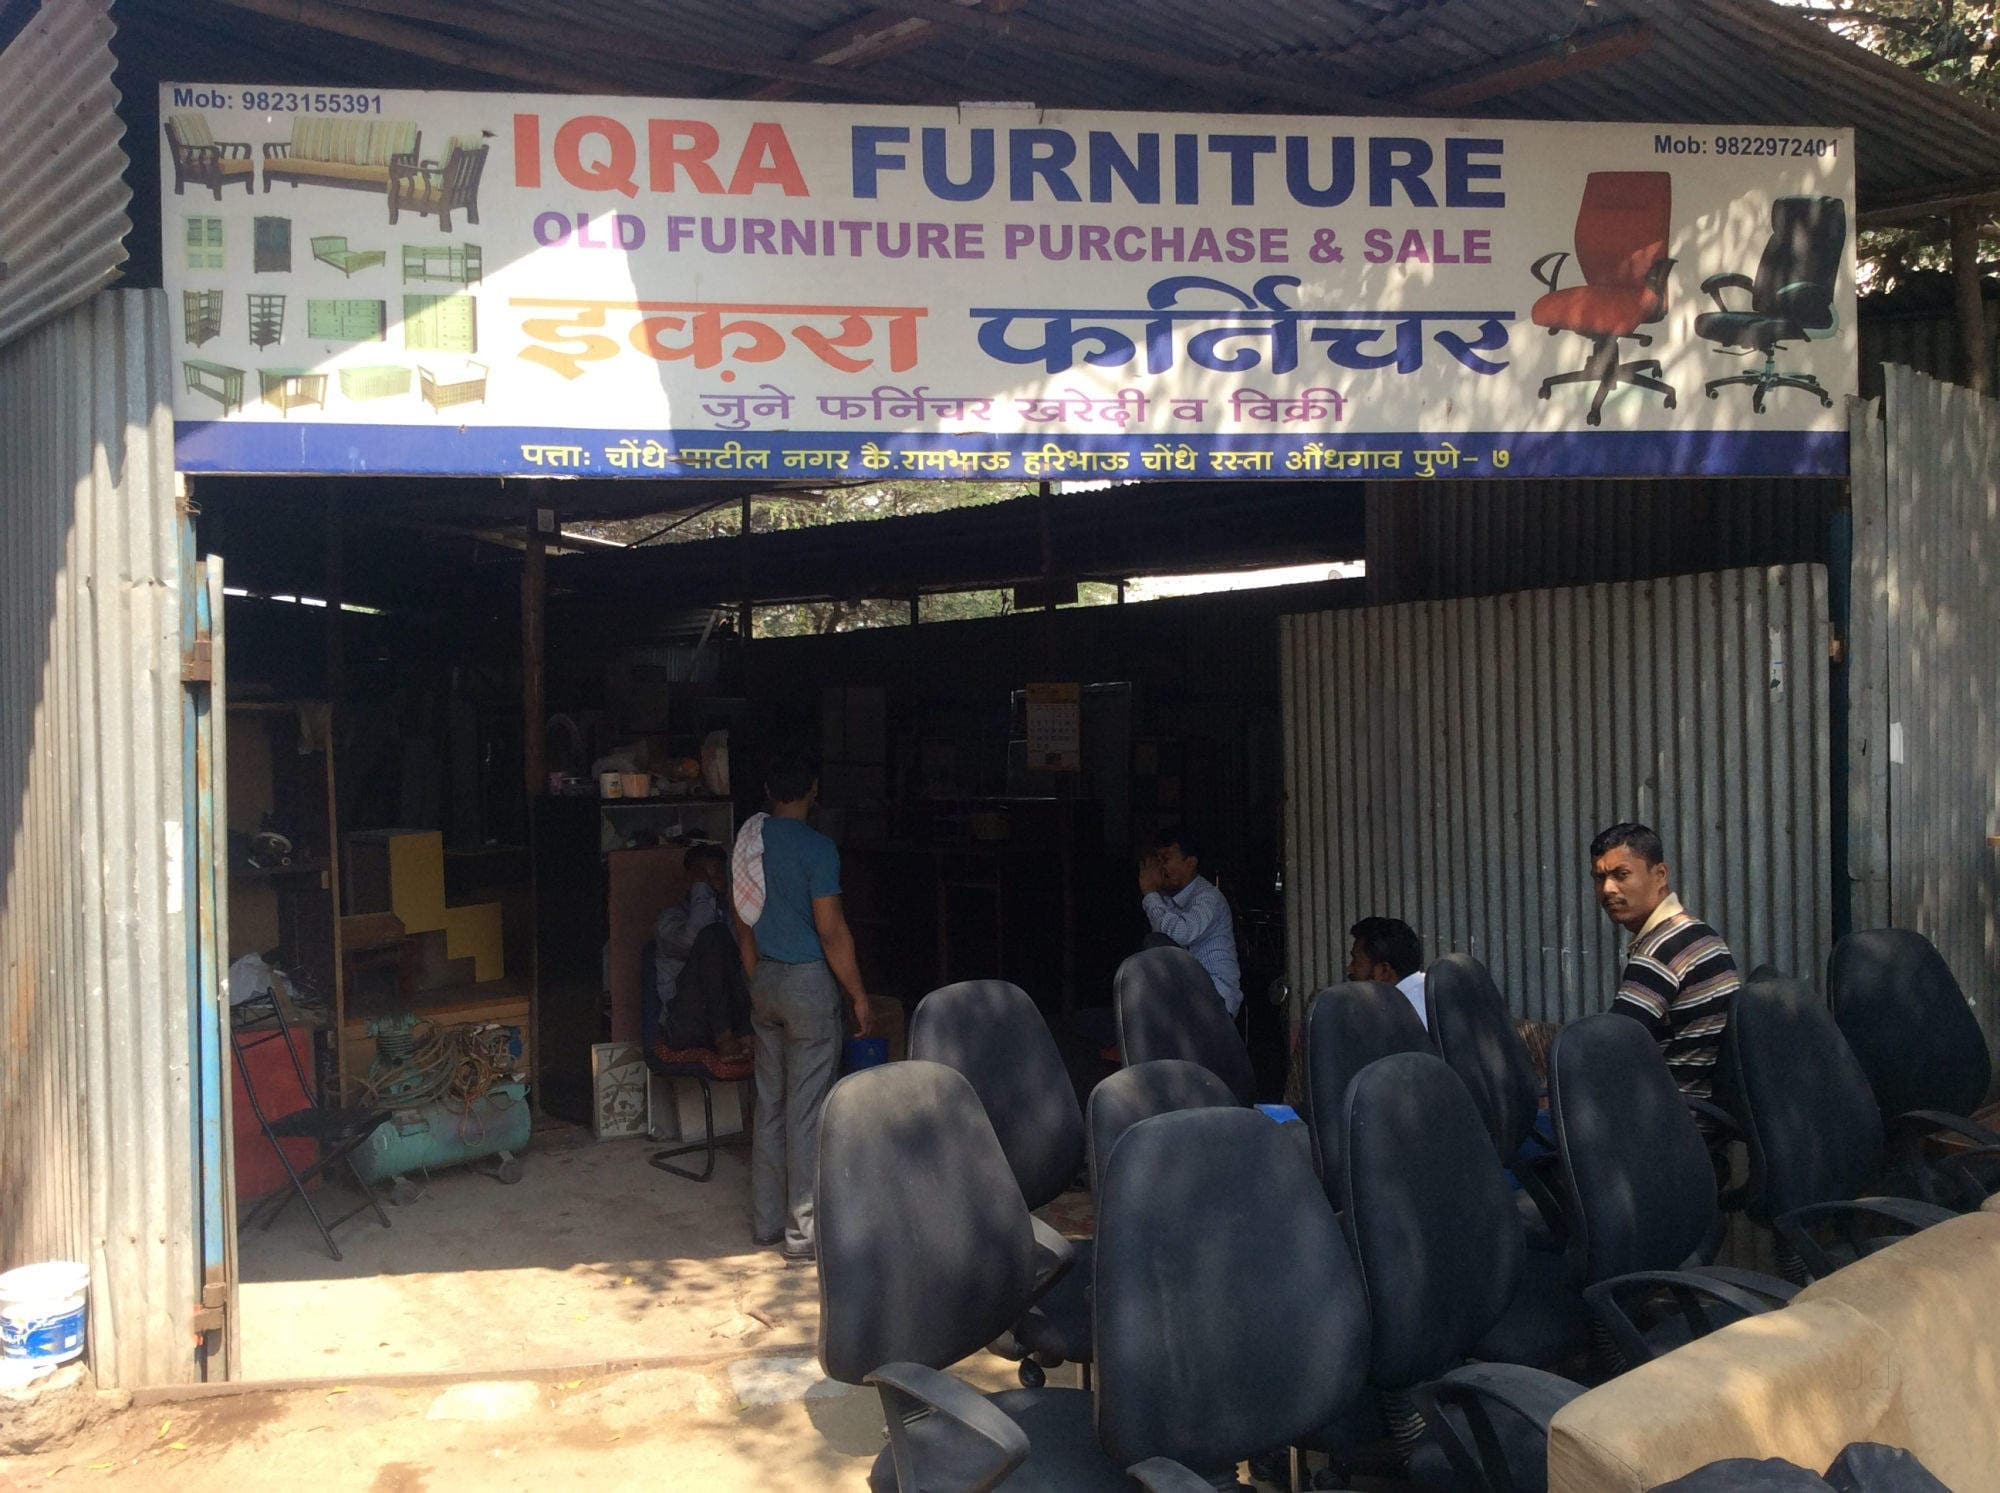 Top 100 Second Hand Furniture Buyers In Hadapsar Best Old